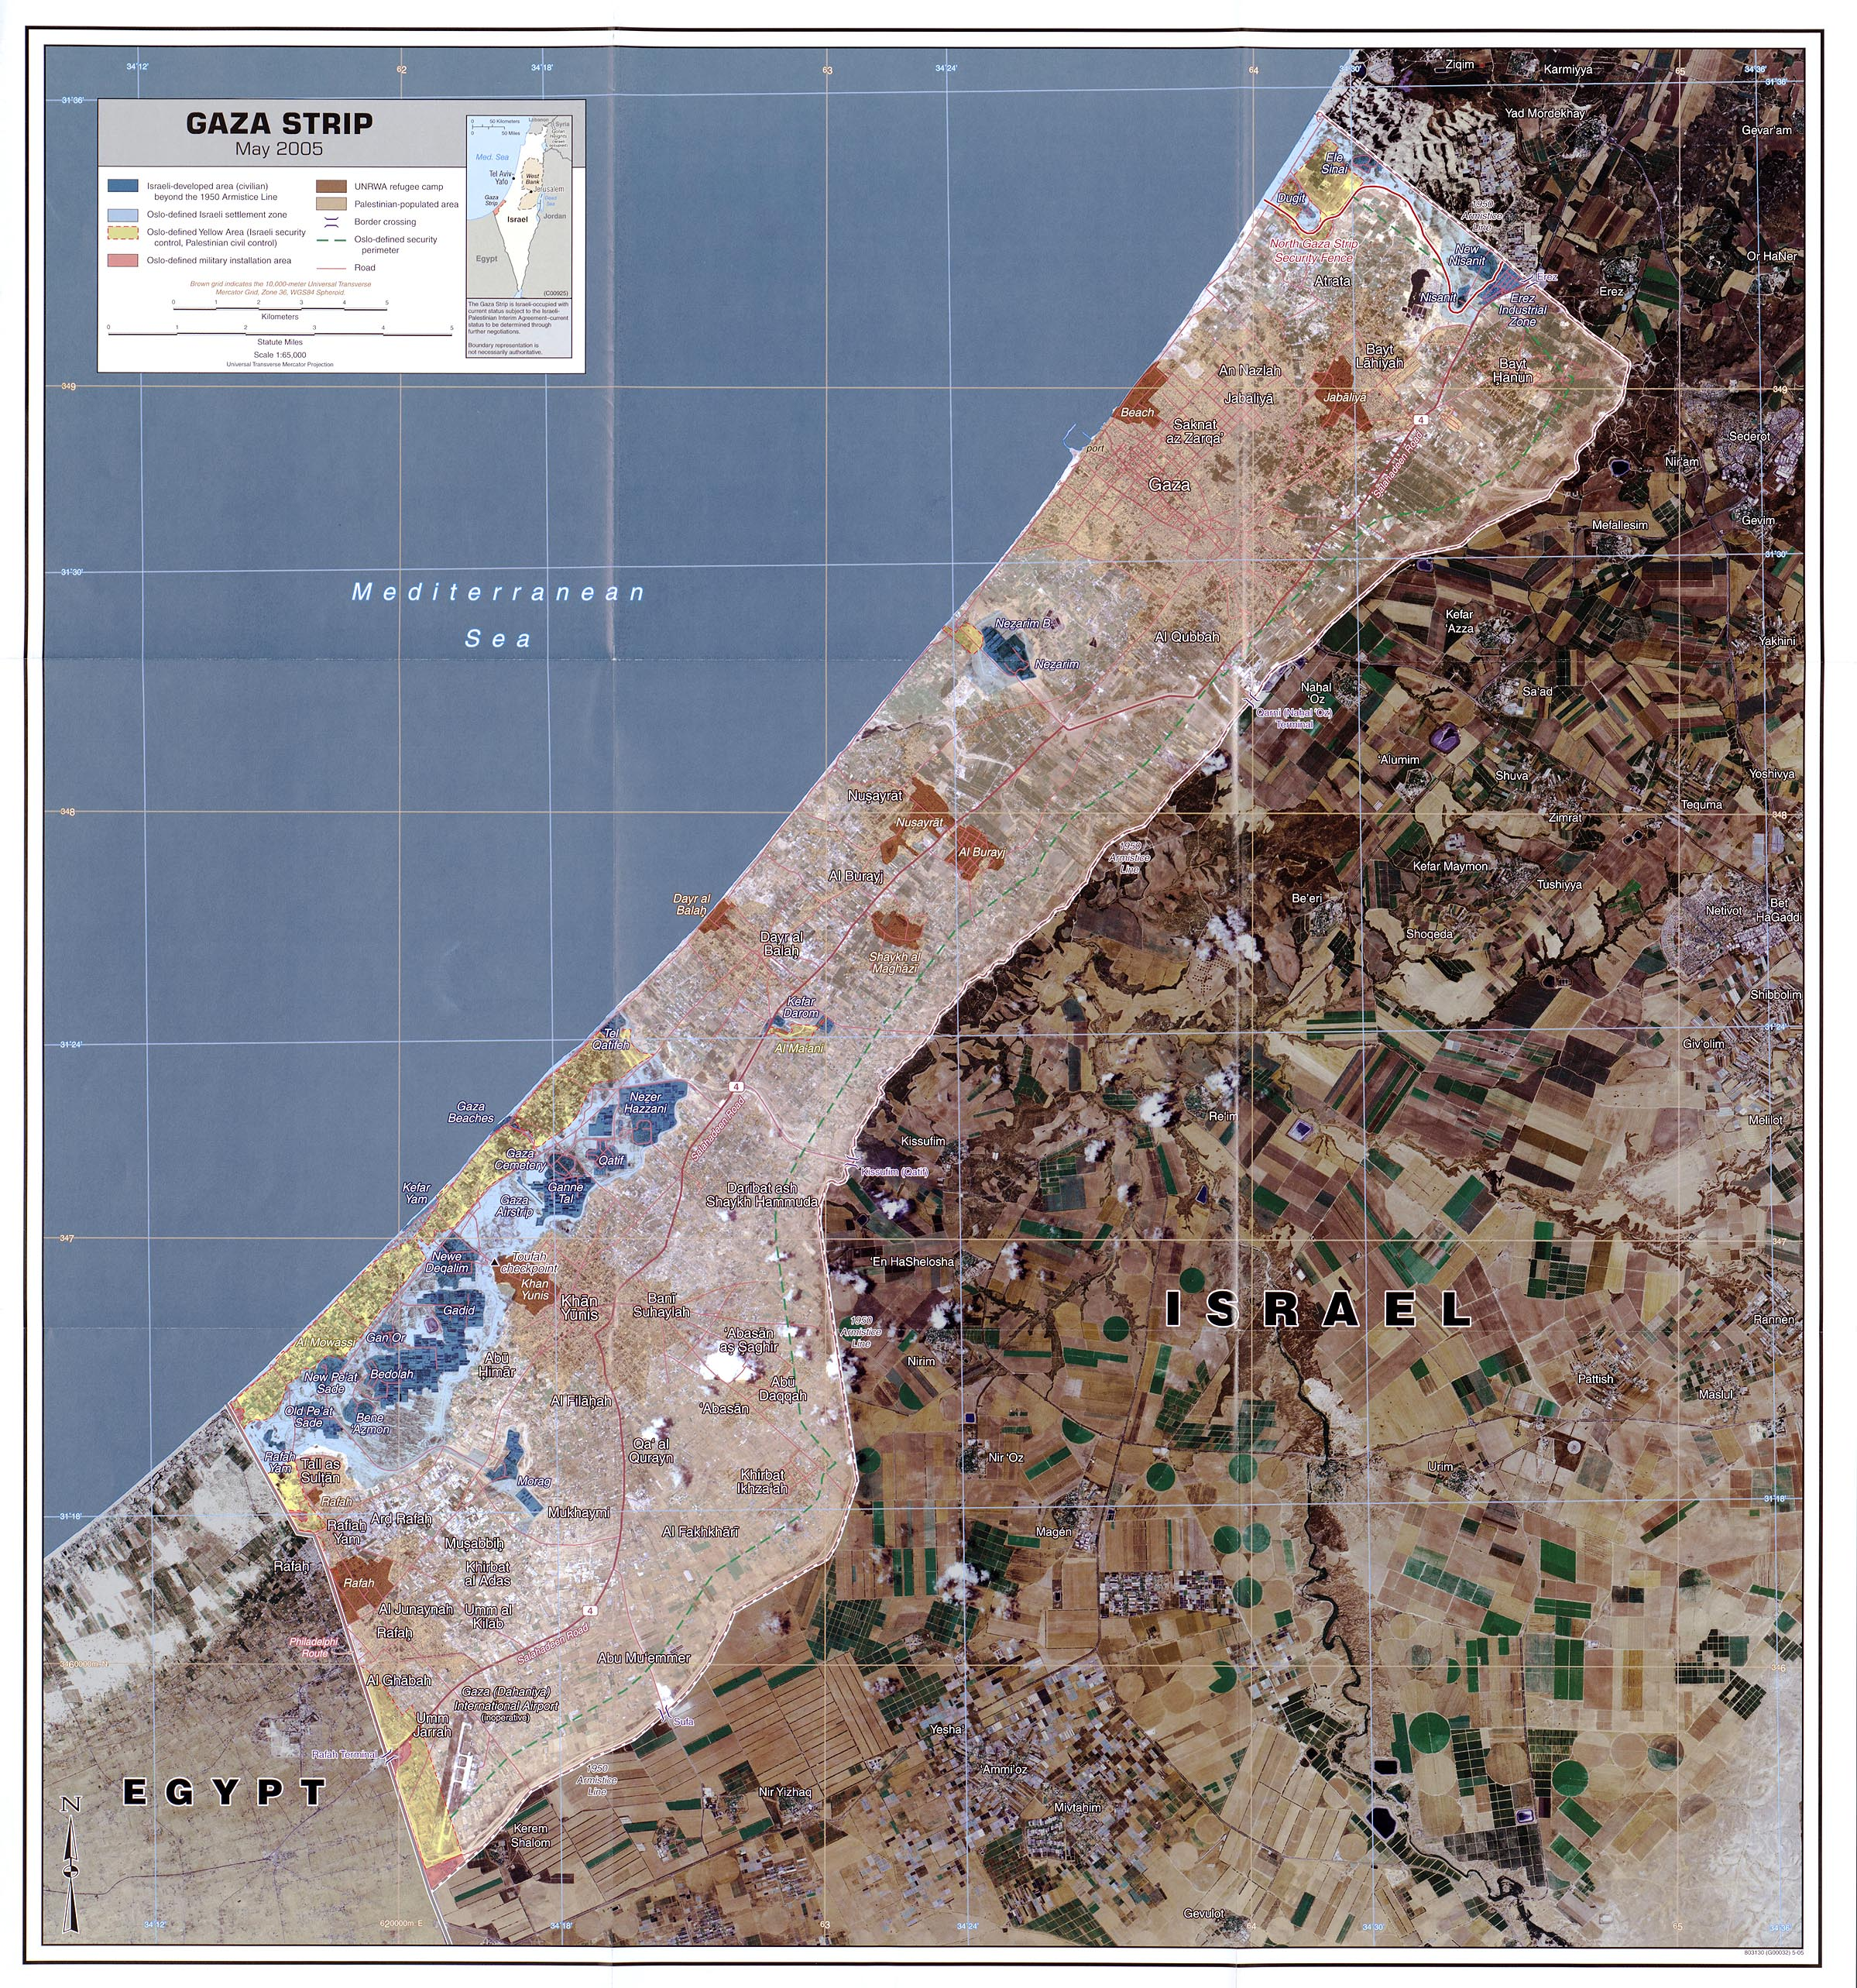 http://www.lib.utexas.edu/maps/middle_east_and_asia/gaza_strip_may_2005.jpg